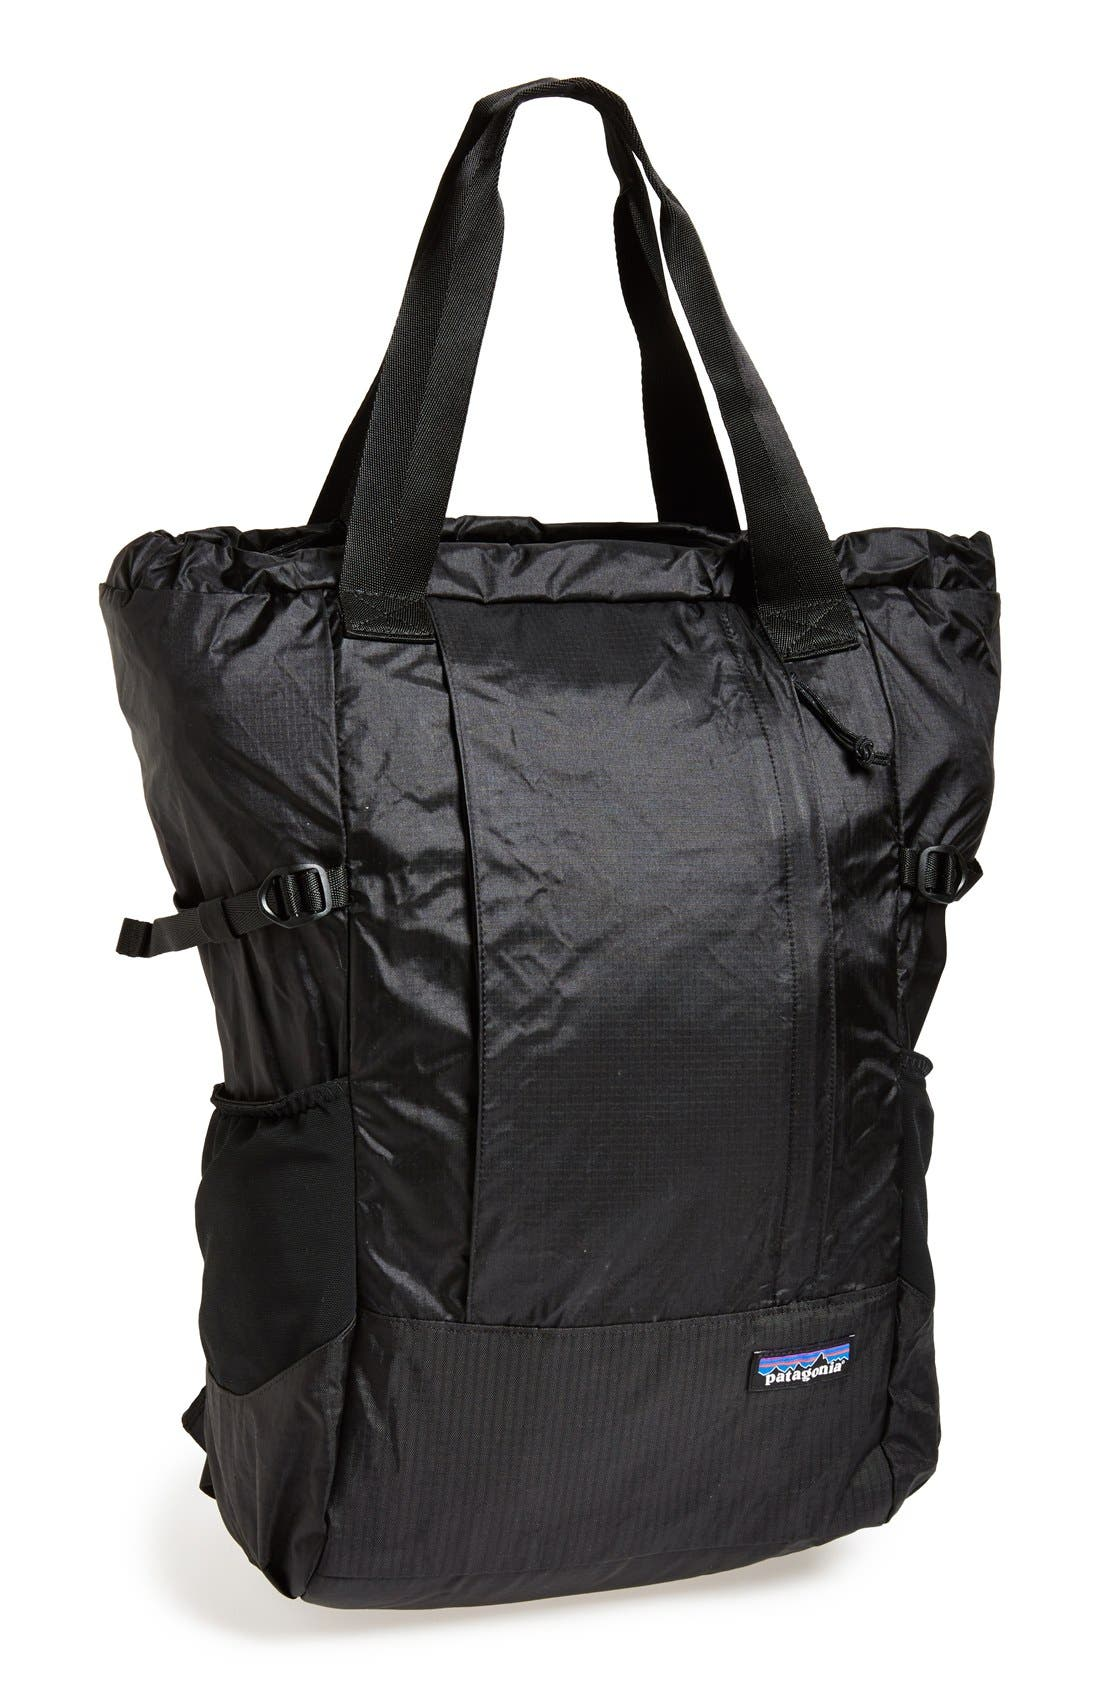 Alternate Image 1 Selected - Patagonia Lightweight Travel Tote Pack